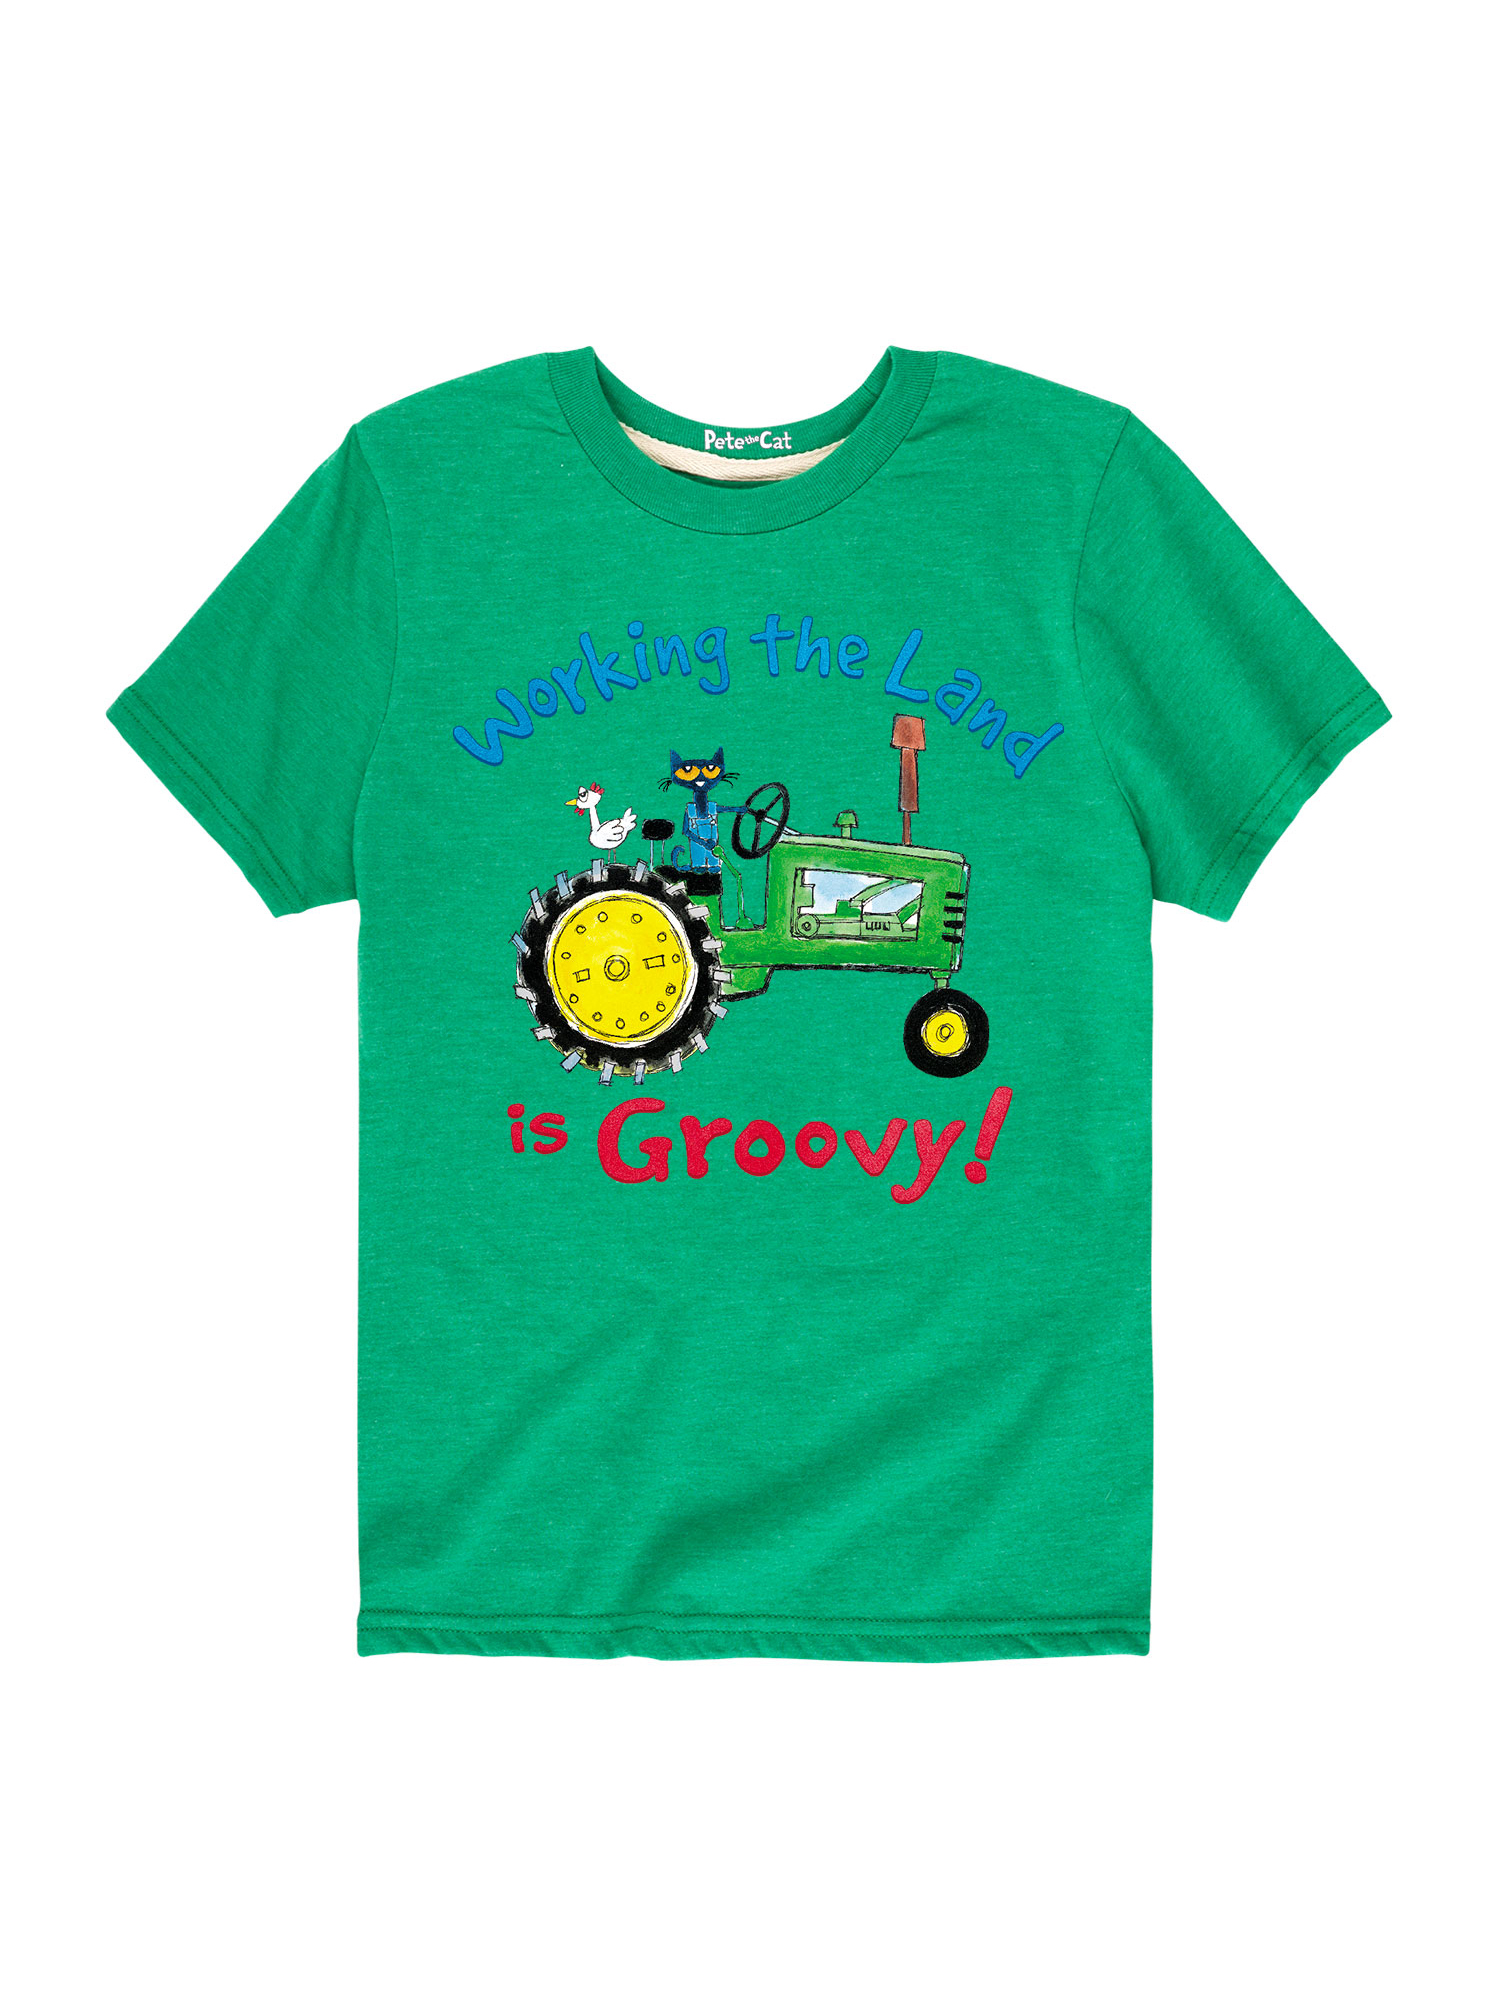 Pete The Cat Working The Land - Toddler Short Sleeve Tee